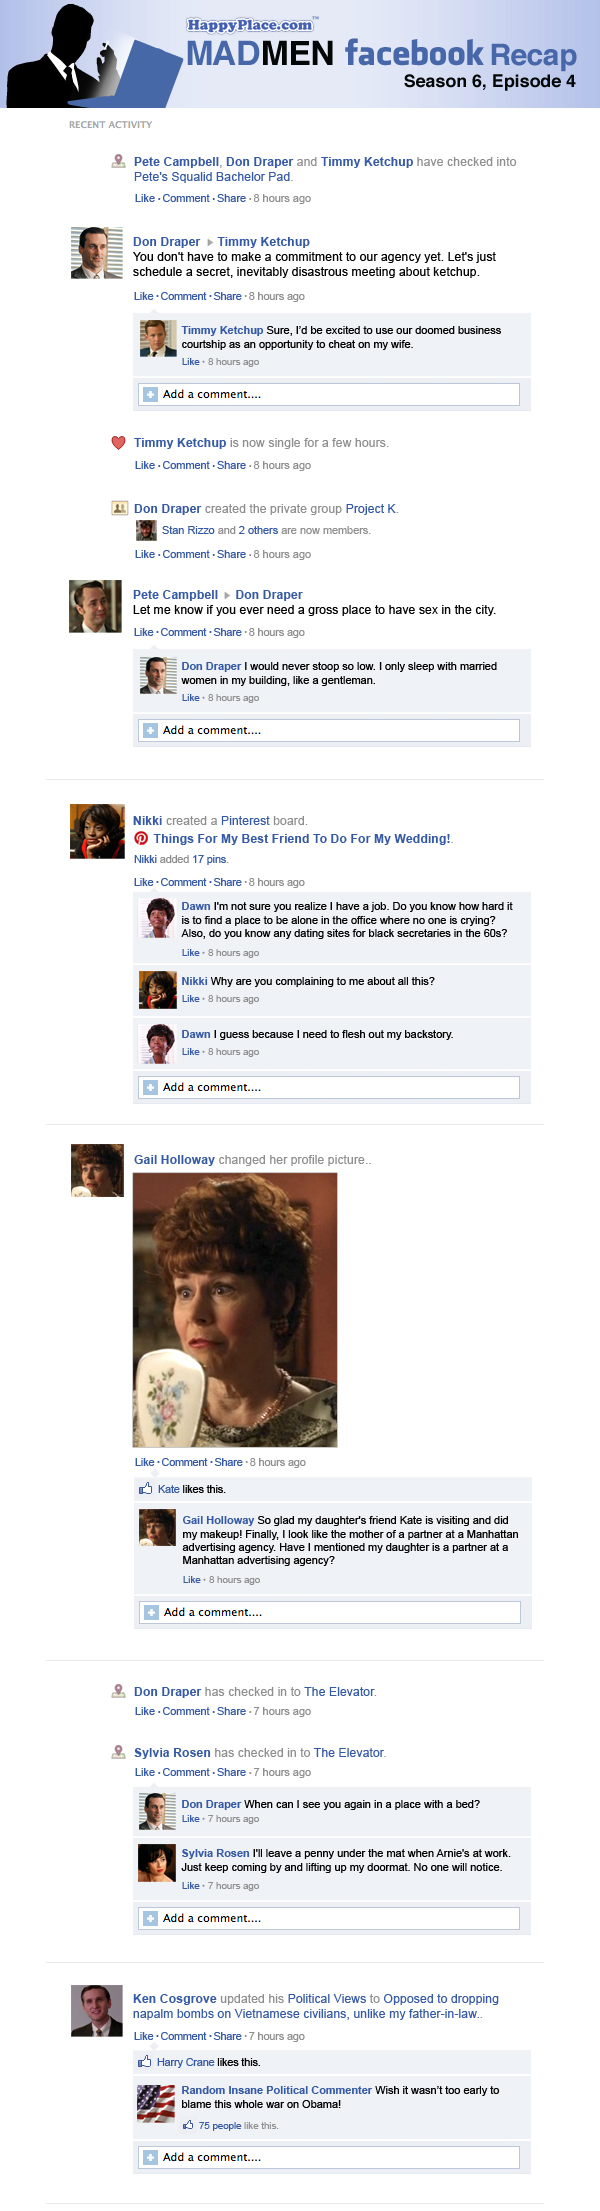 If Mad Men took place entirely on Facebook: Season 6, Episode 4.